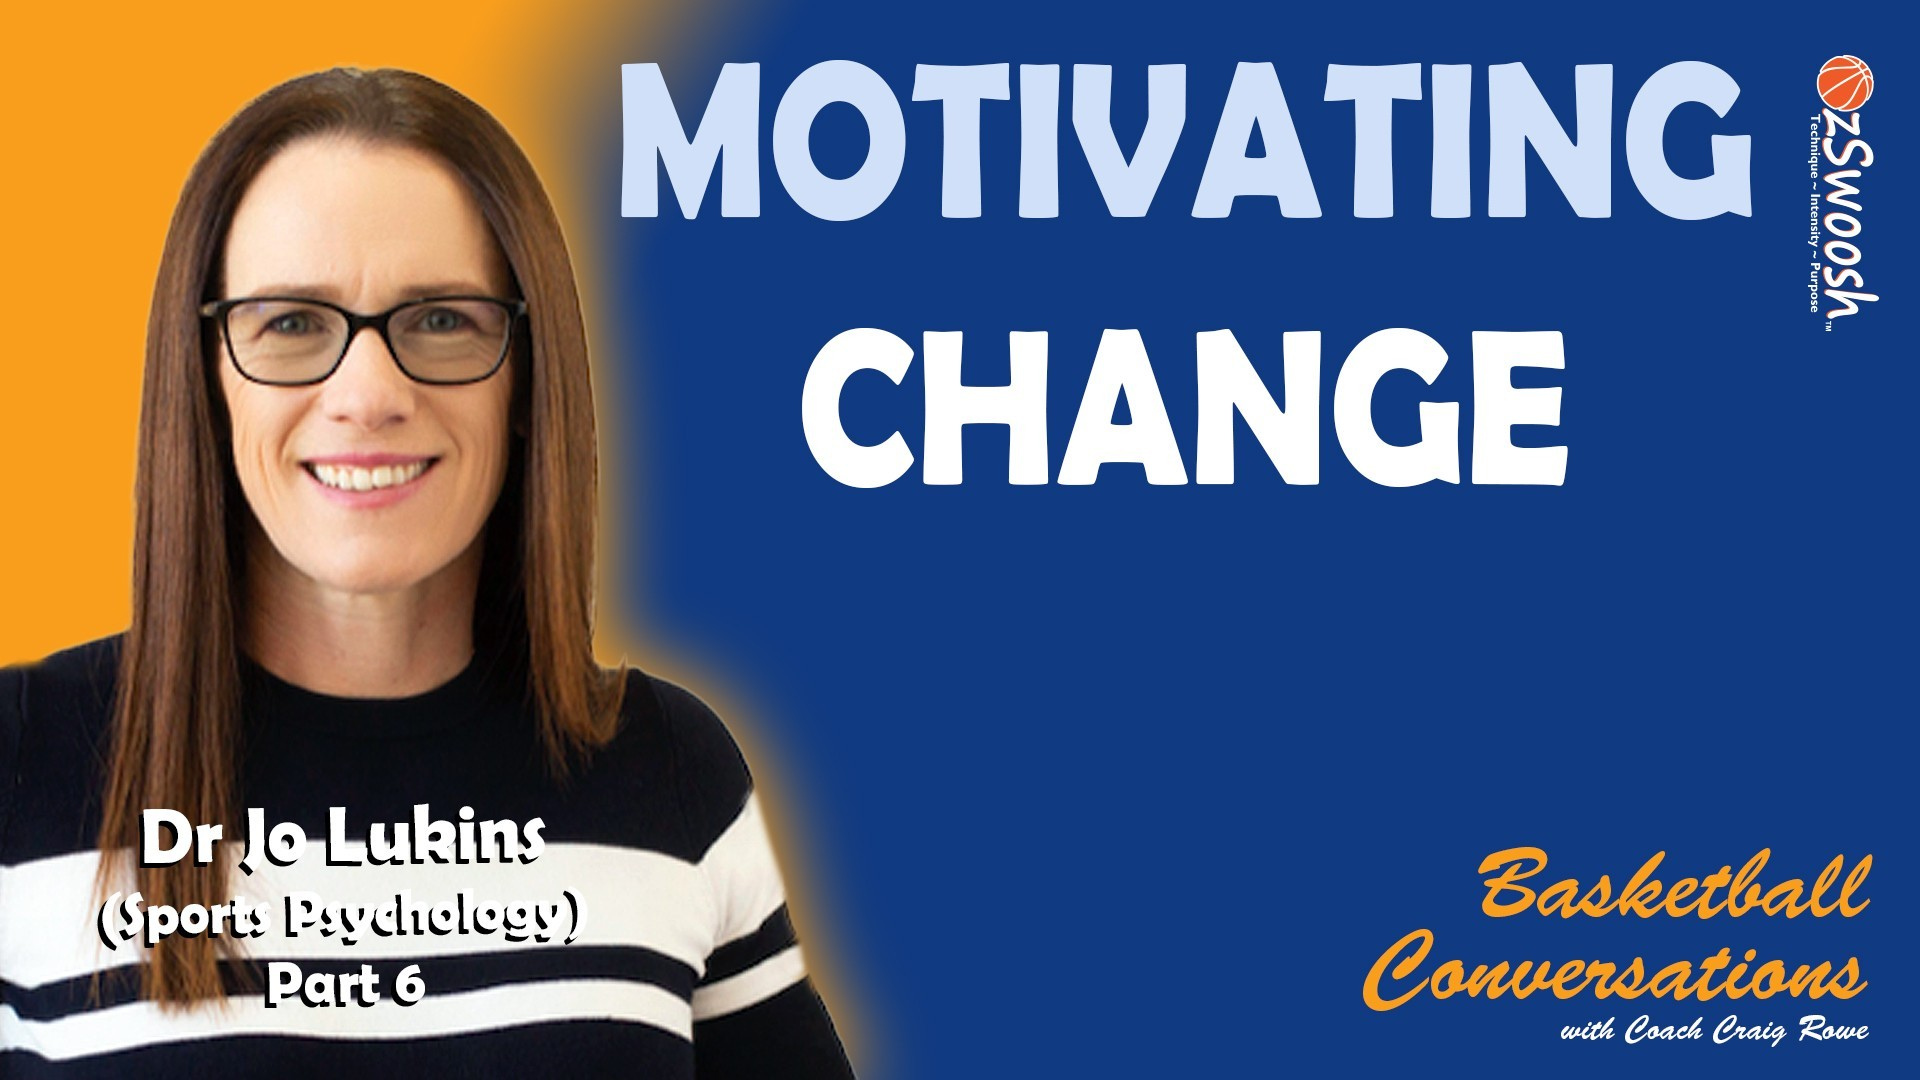 Improve Motivation with Creative Thinking - Dr Jo Lukins (Pt 5)